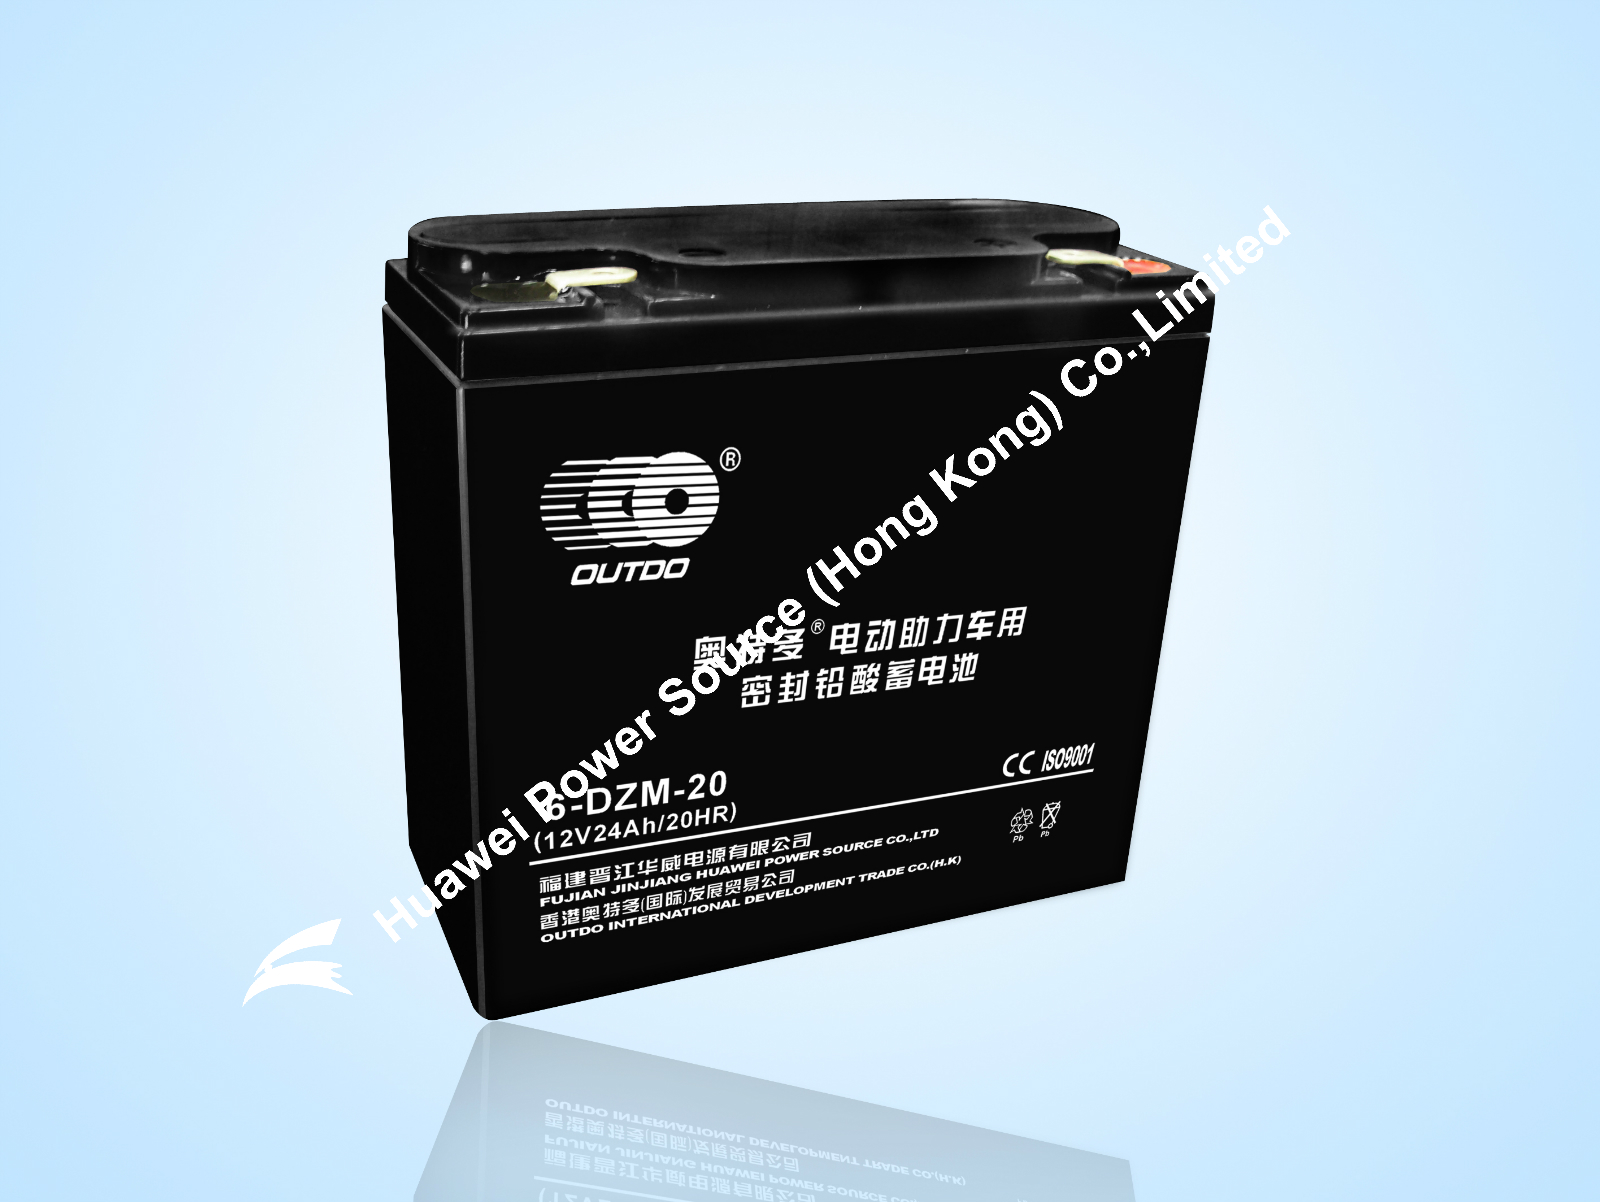 Electric Bike Battery / E-bike Battery / EV battery / Electric Vehicle Battery